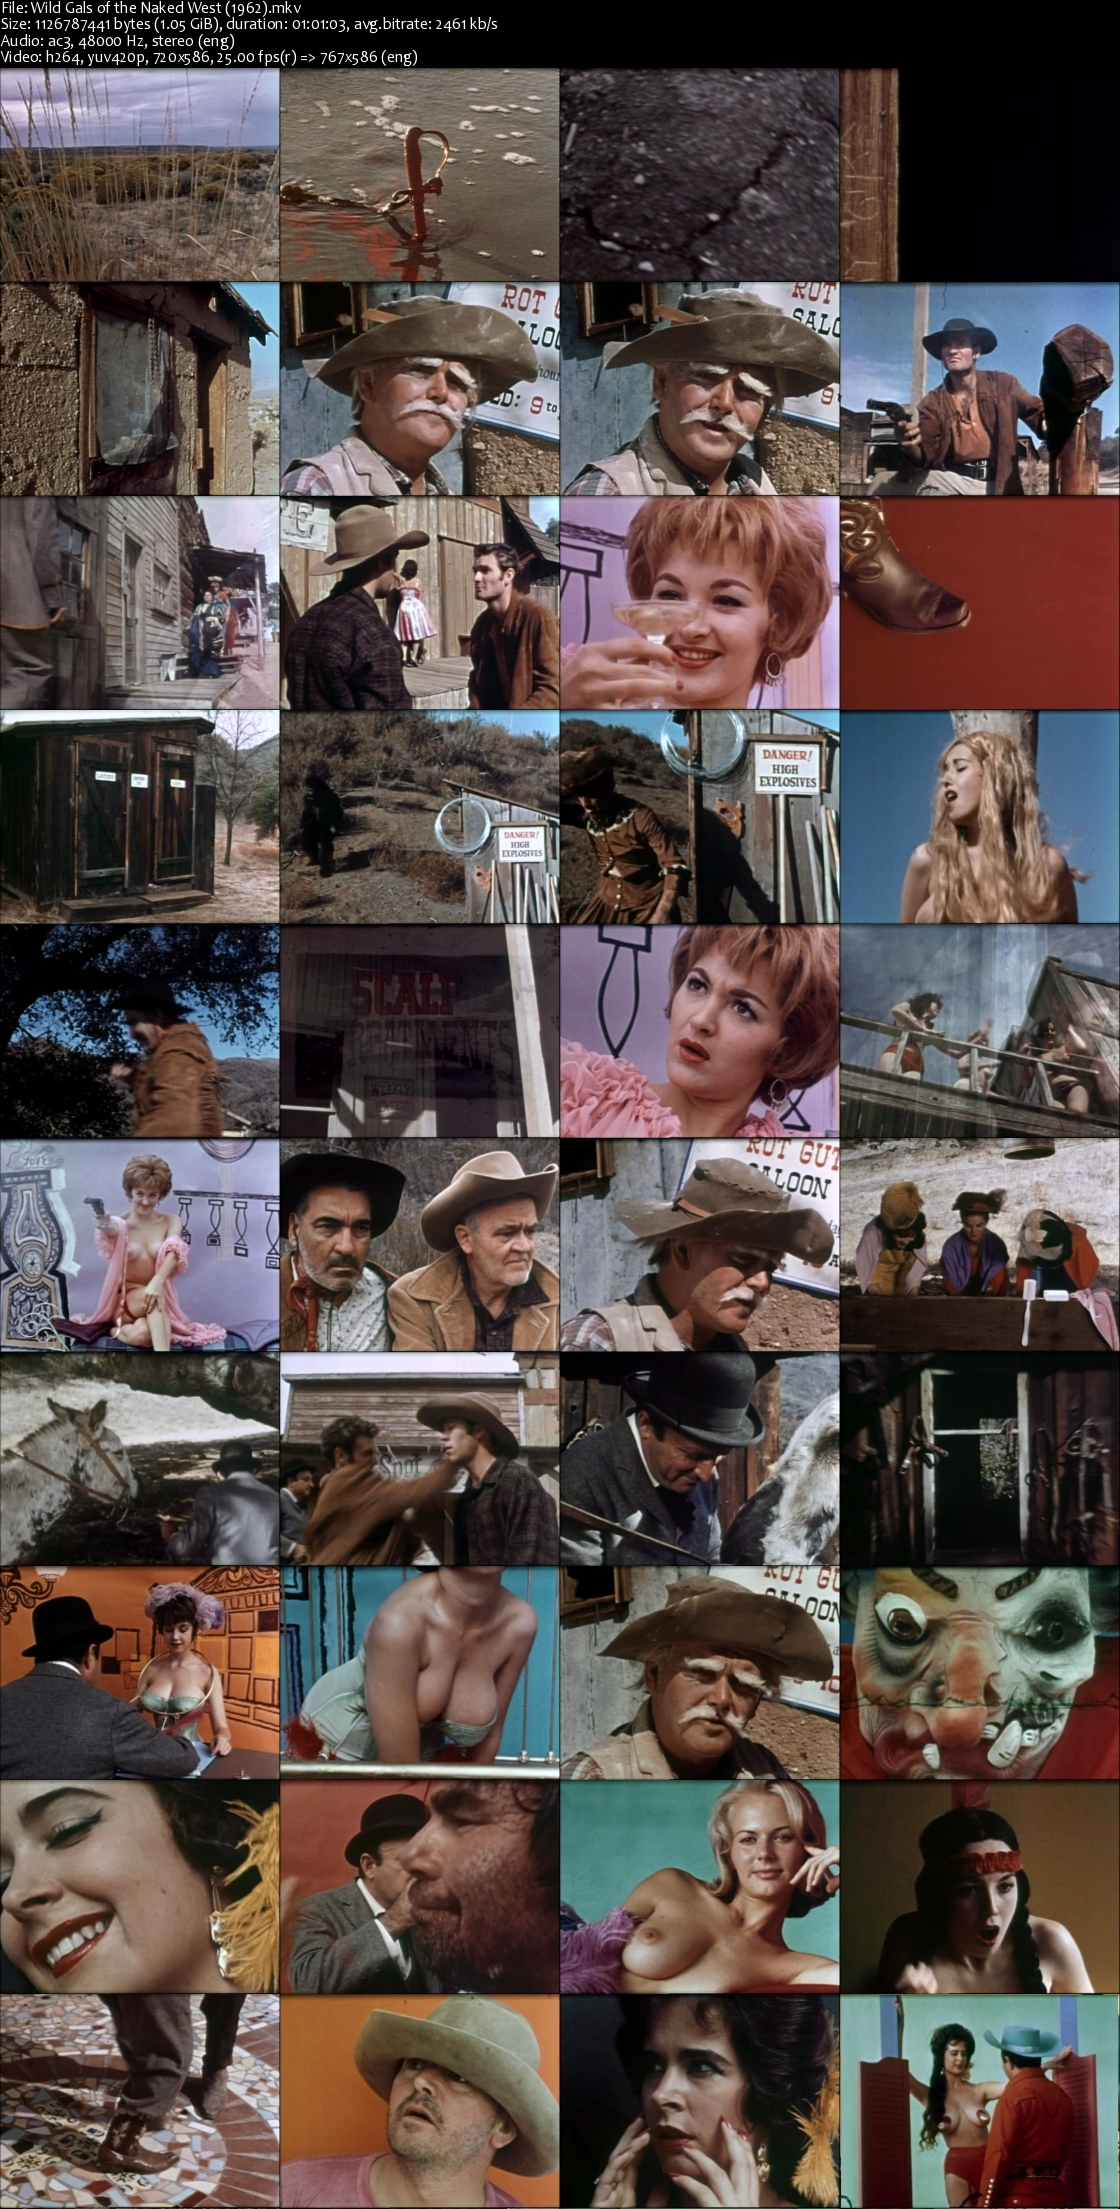 Wild Gals of the Naked West (1962) Dvdrip [1.05Gb]